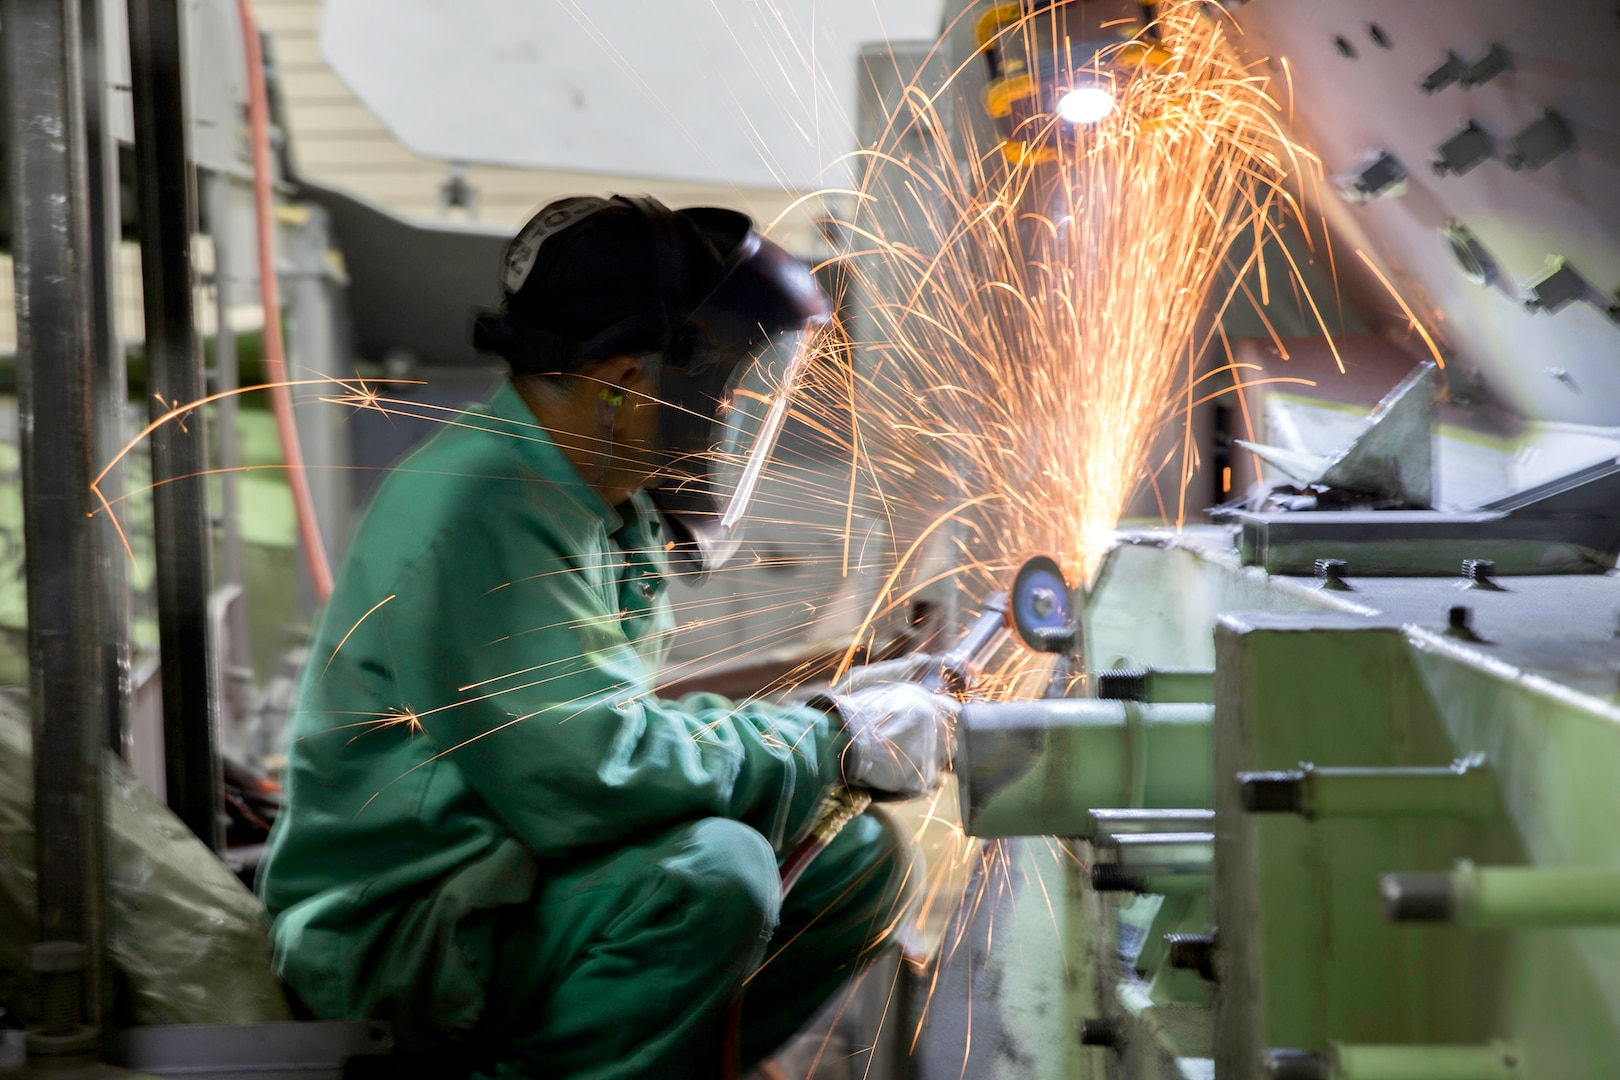 Image of a welder with a angle grinder with sparks coming off the metal plate he's working on.